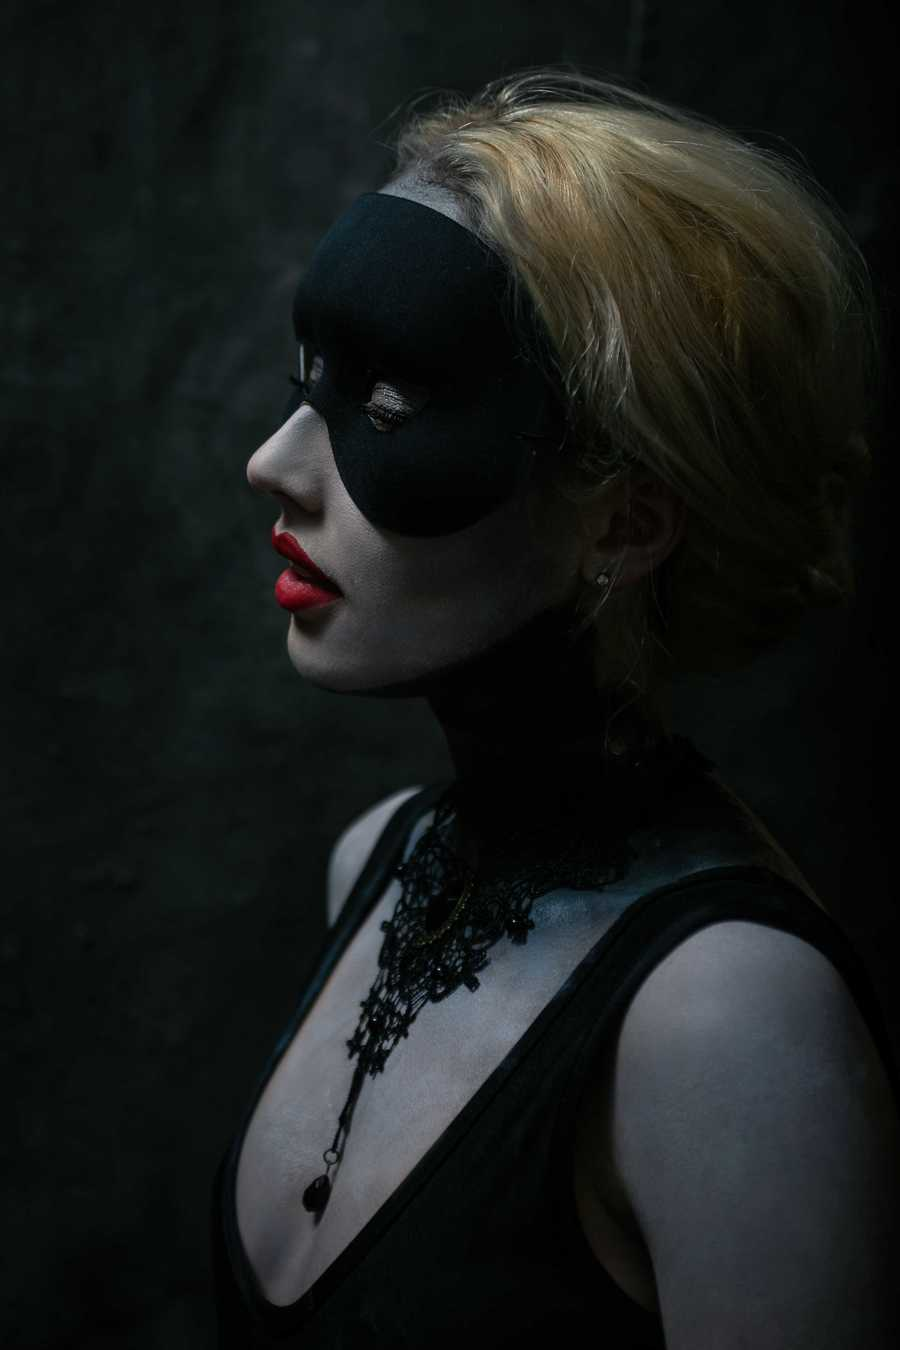 50 Shades of Goth / Photography by HannahLaw, Model Clairejtmartin, Post processing by HannahLaw, Taken at HannahLaw / Uploaded 13th October 2021 @ 04:19 PM